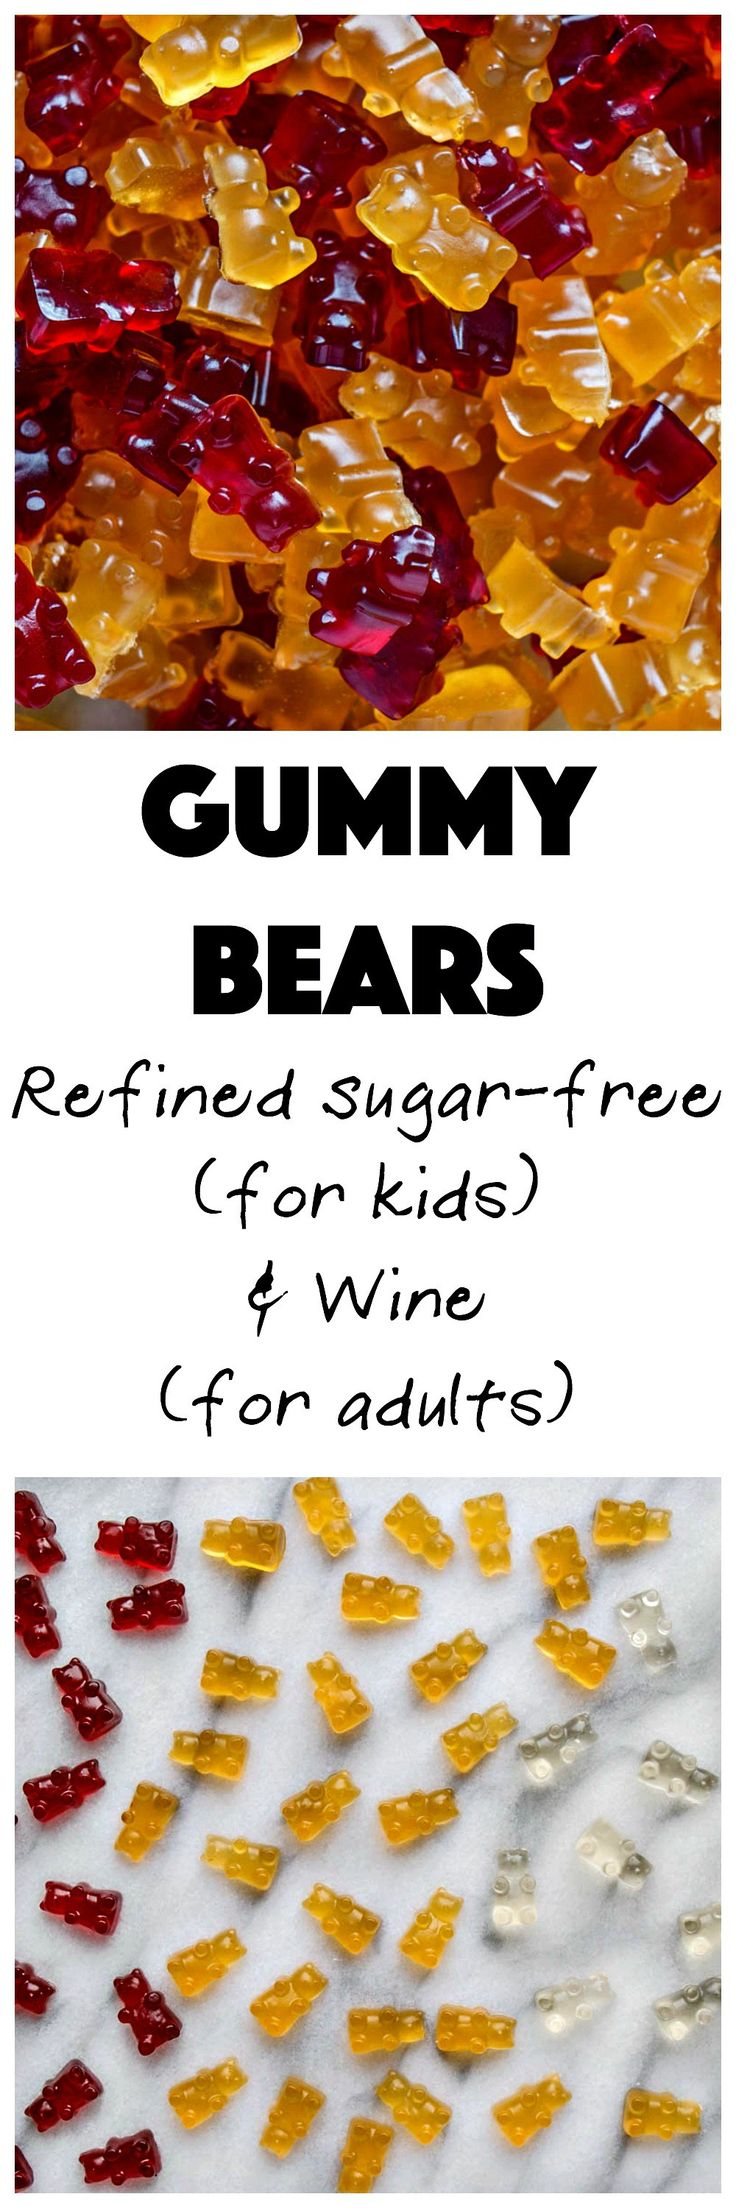 Gummy Bears | My Kitchen Love. Kid-loving, refined sugar-free treat! #candy #gummybears #sugarfree